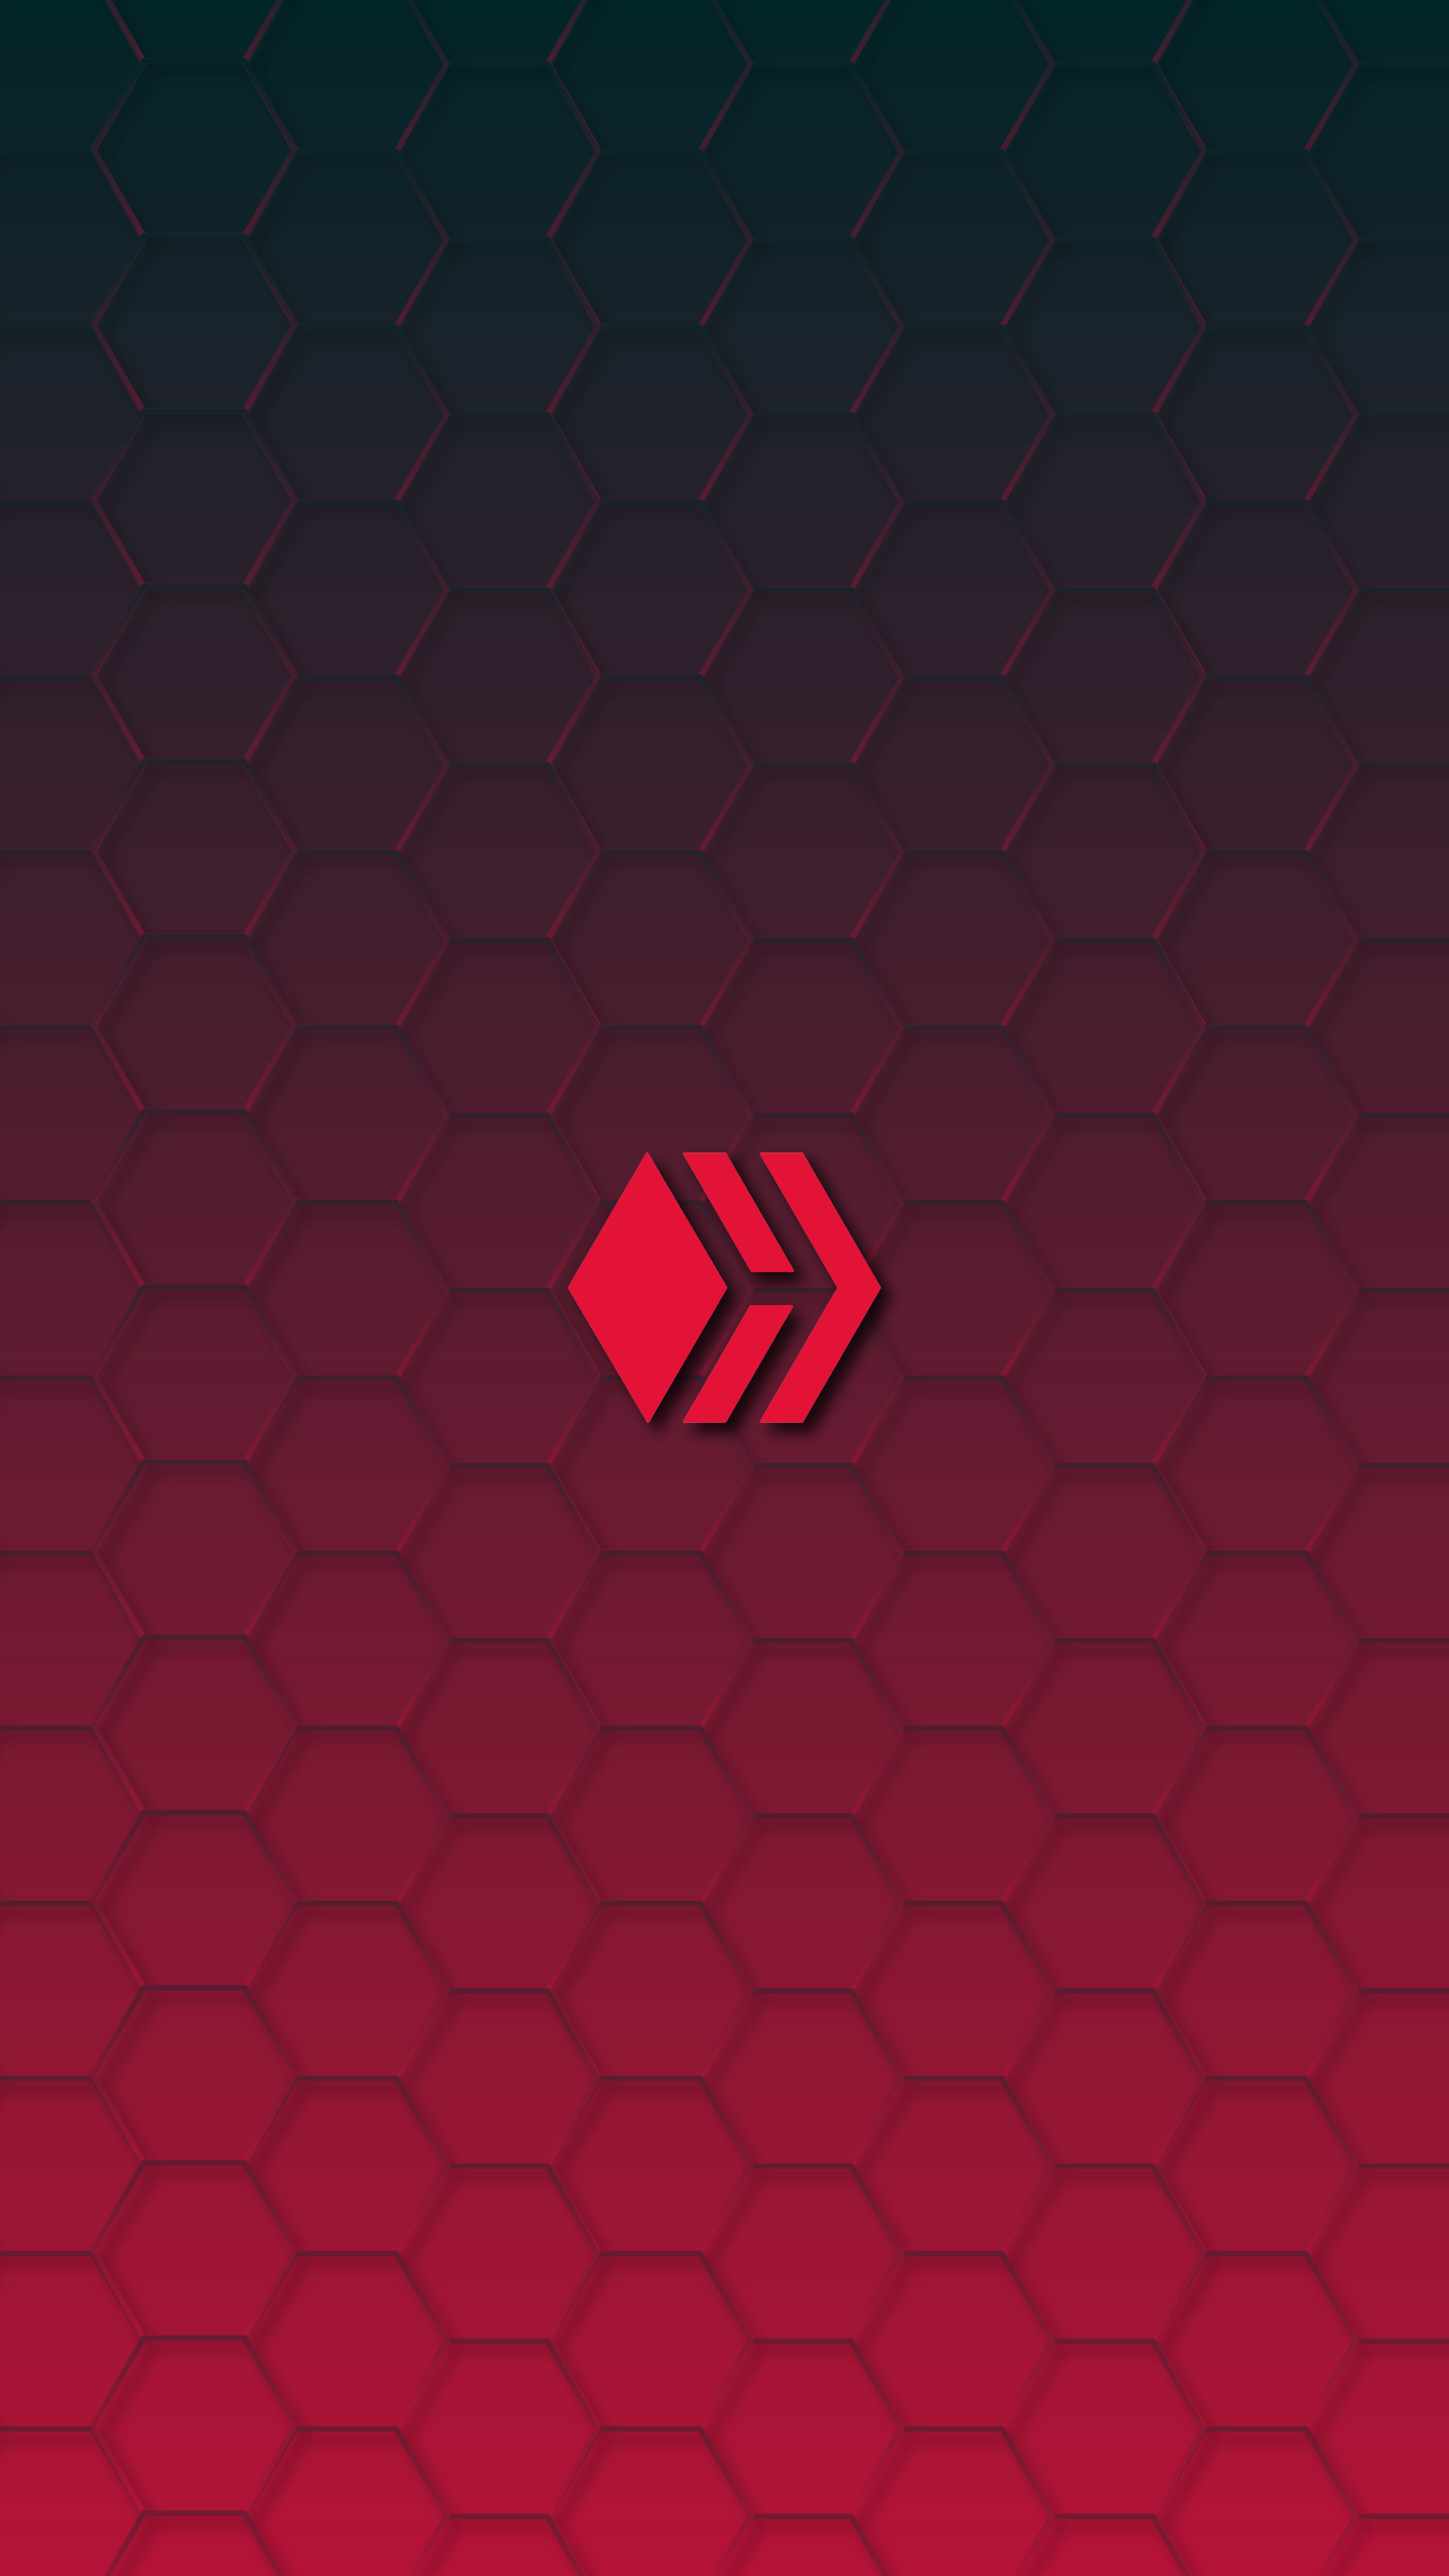 wallpapers-06.png